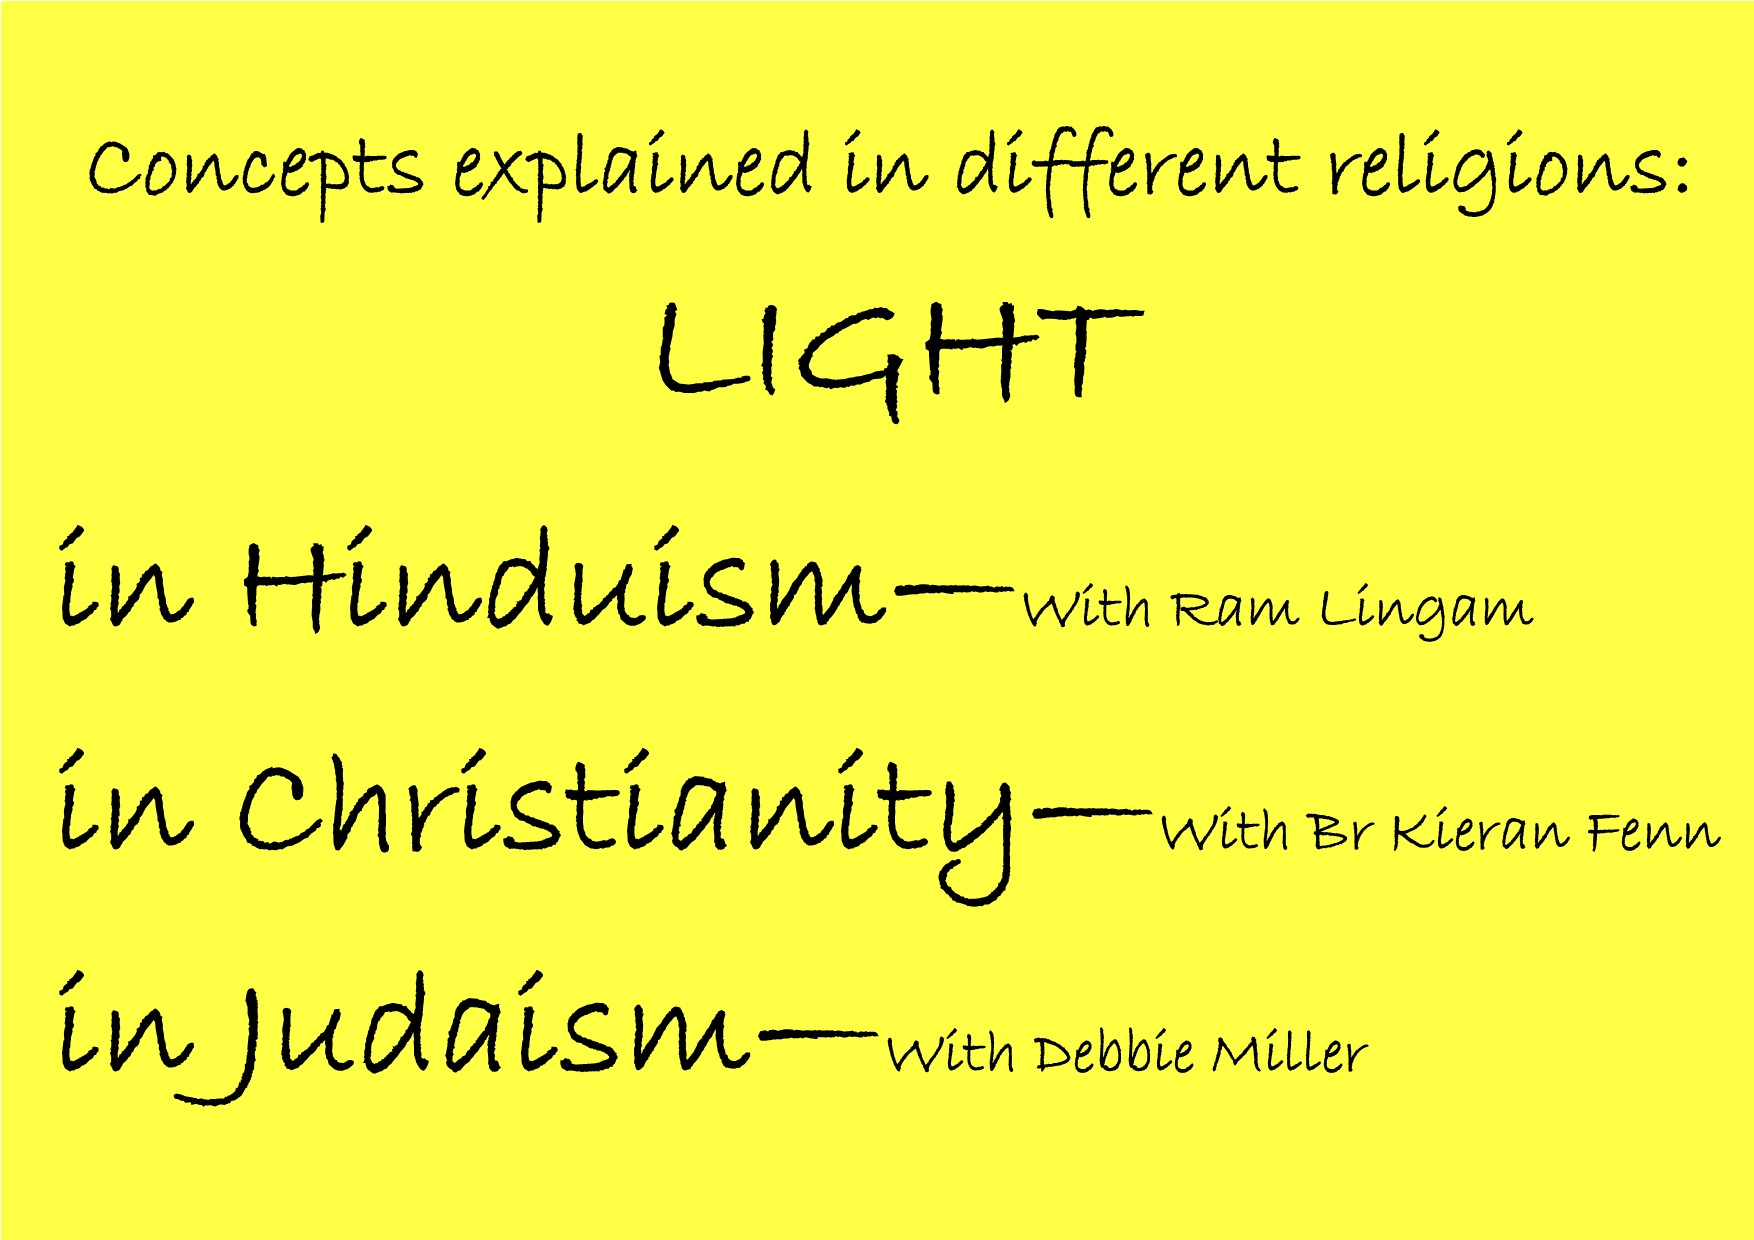 The meaning of Light